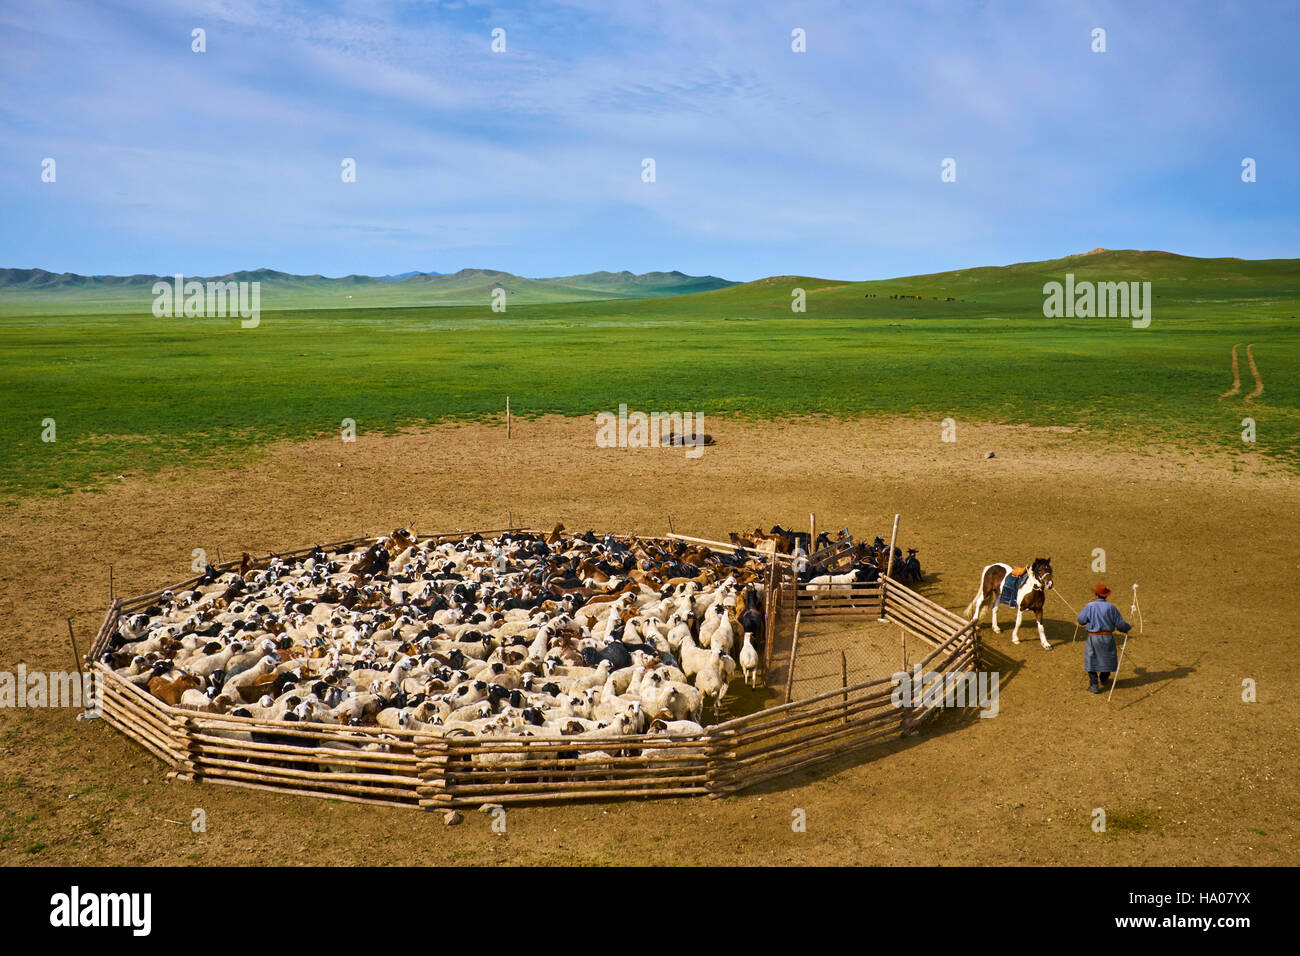 Mongolia, Arkhangai province, nomad camp, sheep herd leaving the stockyard - Stock Image